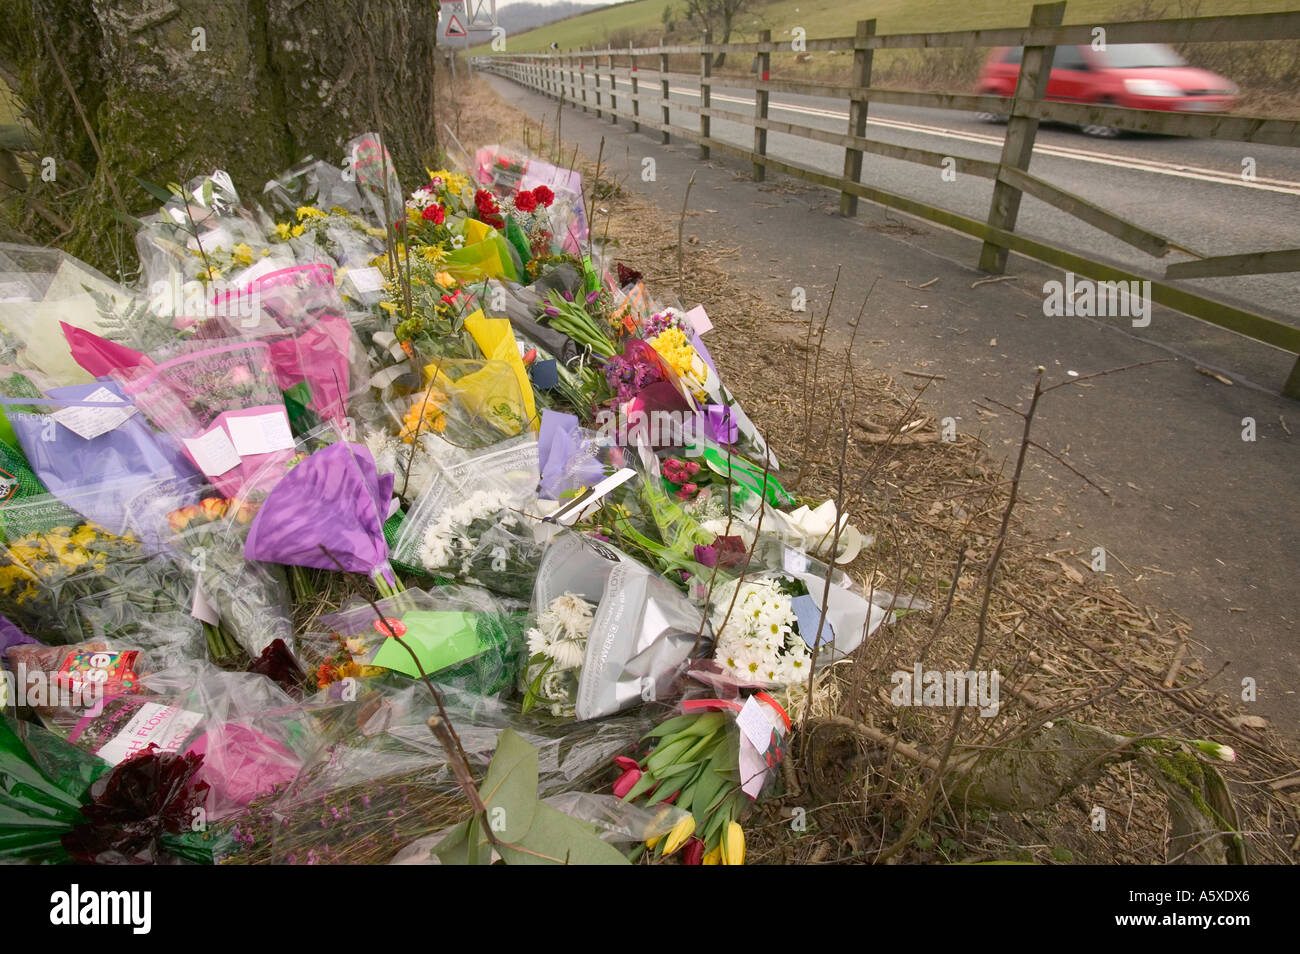 floral tributes at the site of a fatal road traffic accident near windermere, Lake district, Cumbria, UK Stock Photo